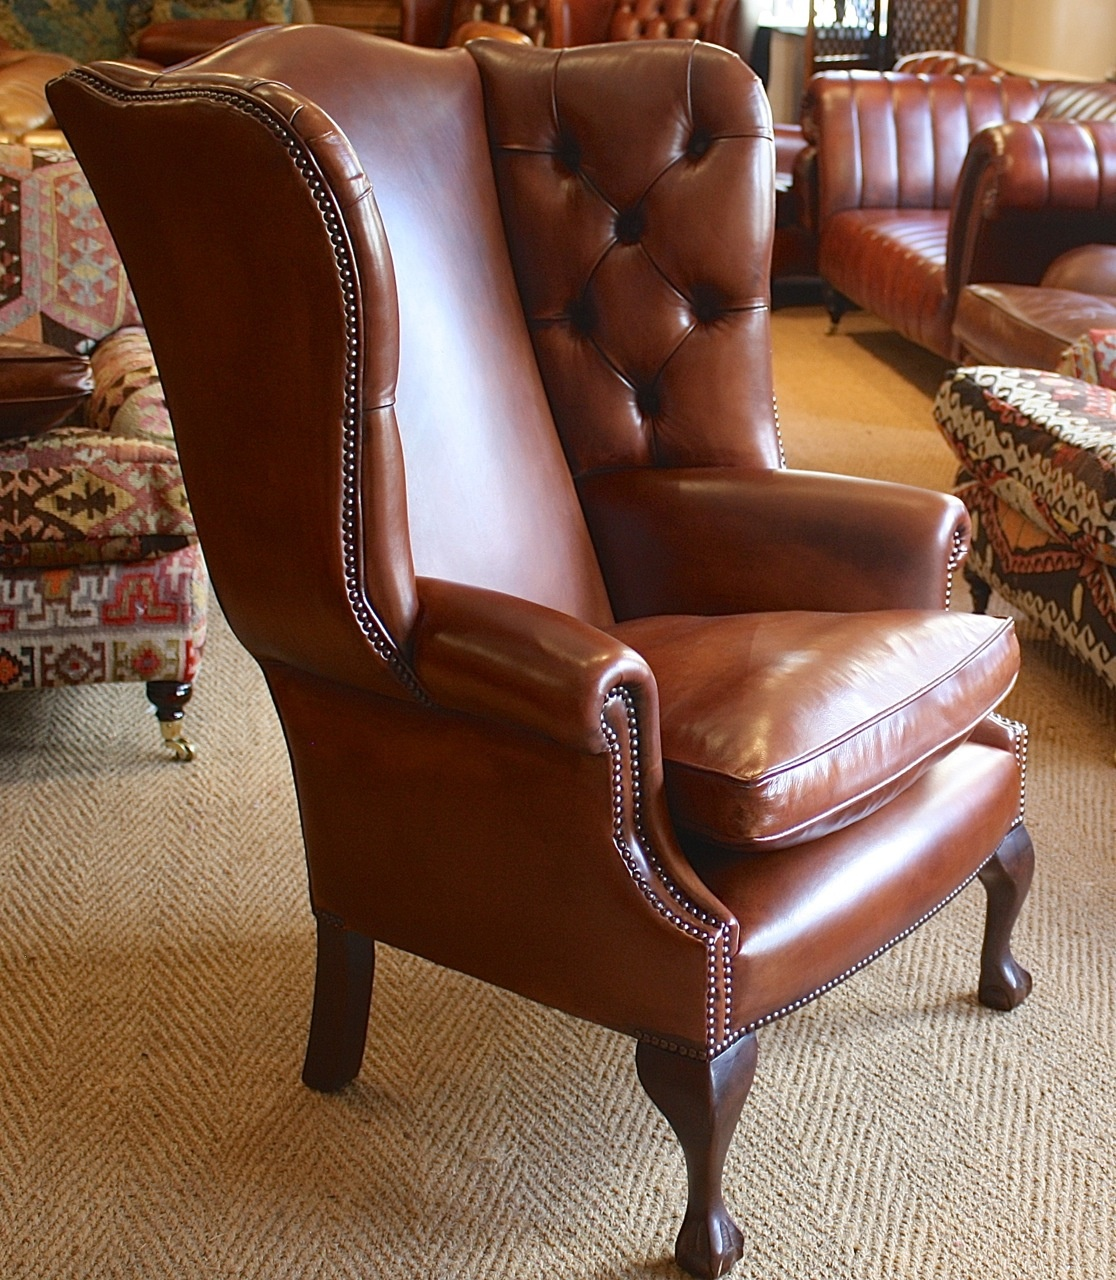 leather chairs of bath for showers bespoke pair georgian